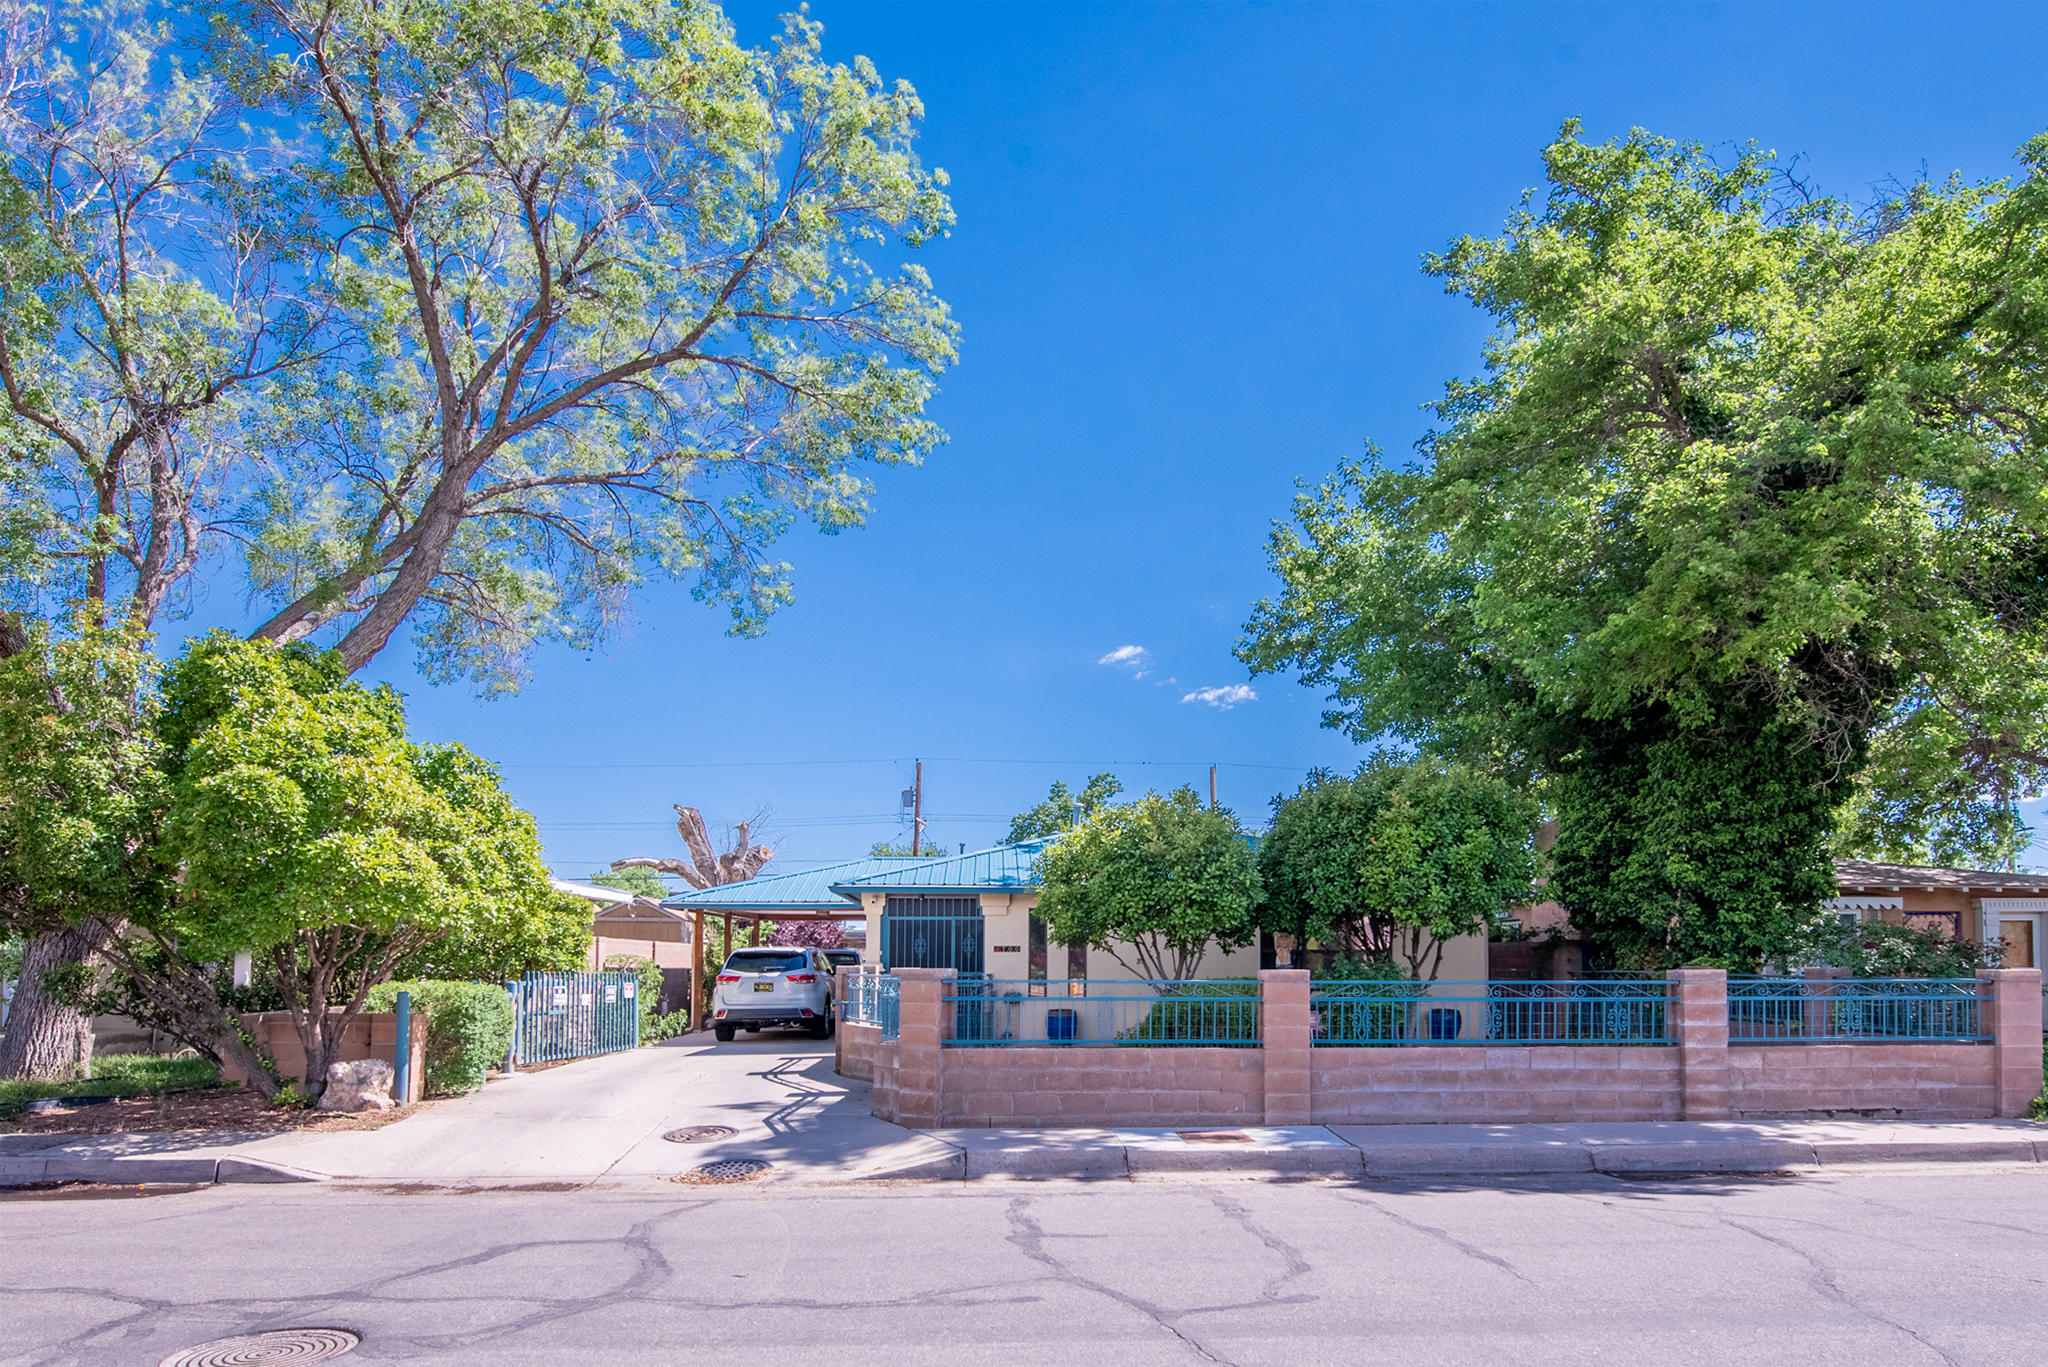 Amazing North Valley property that shows extreme pride of ownership. This home has it all updated windows, pro-panel roof refrigerated air and a guest house! The home has fresh paint and has been updated nicely also has Stainless Steel appliances. amazing virtual tour to check this out!